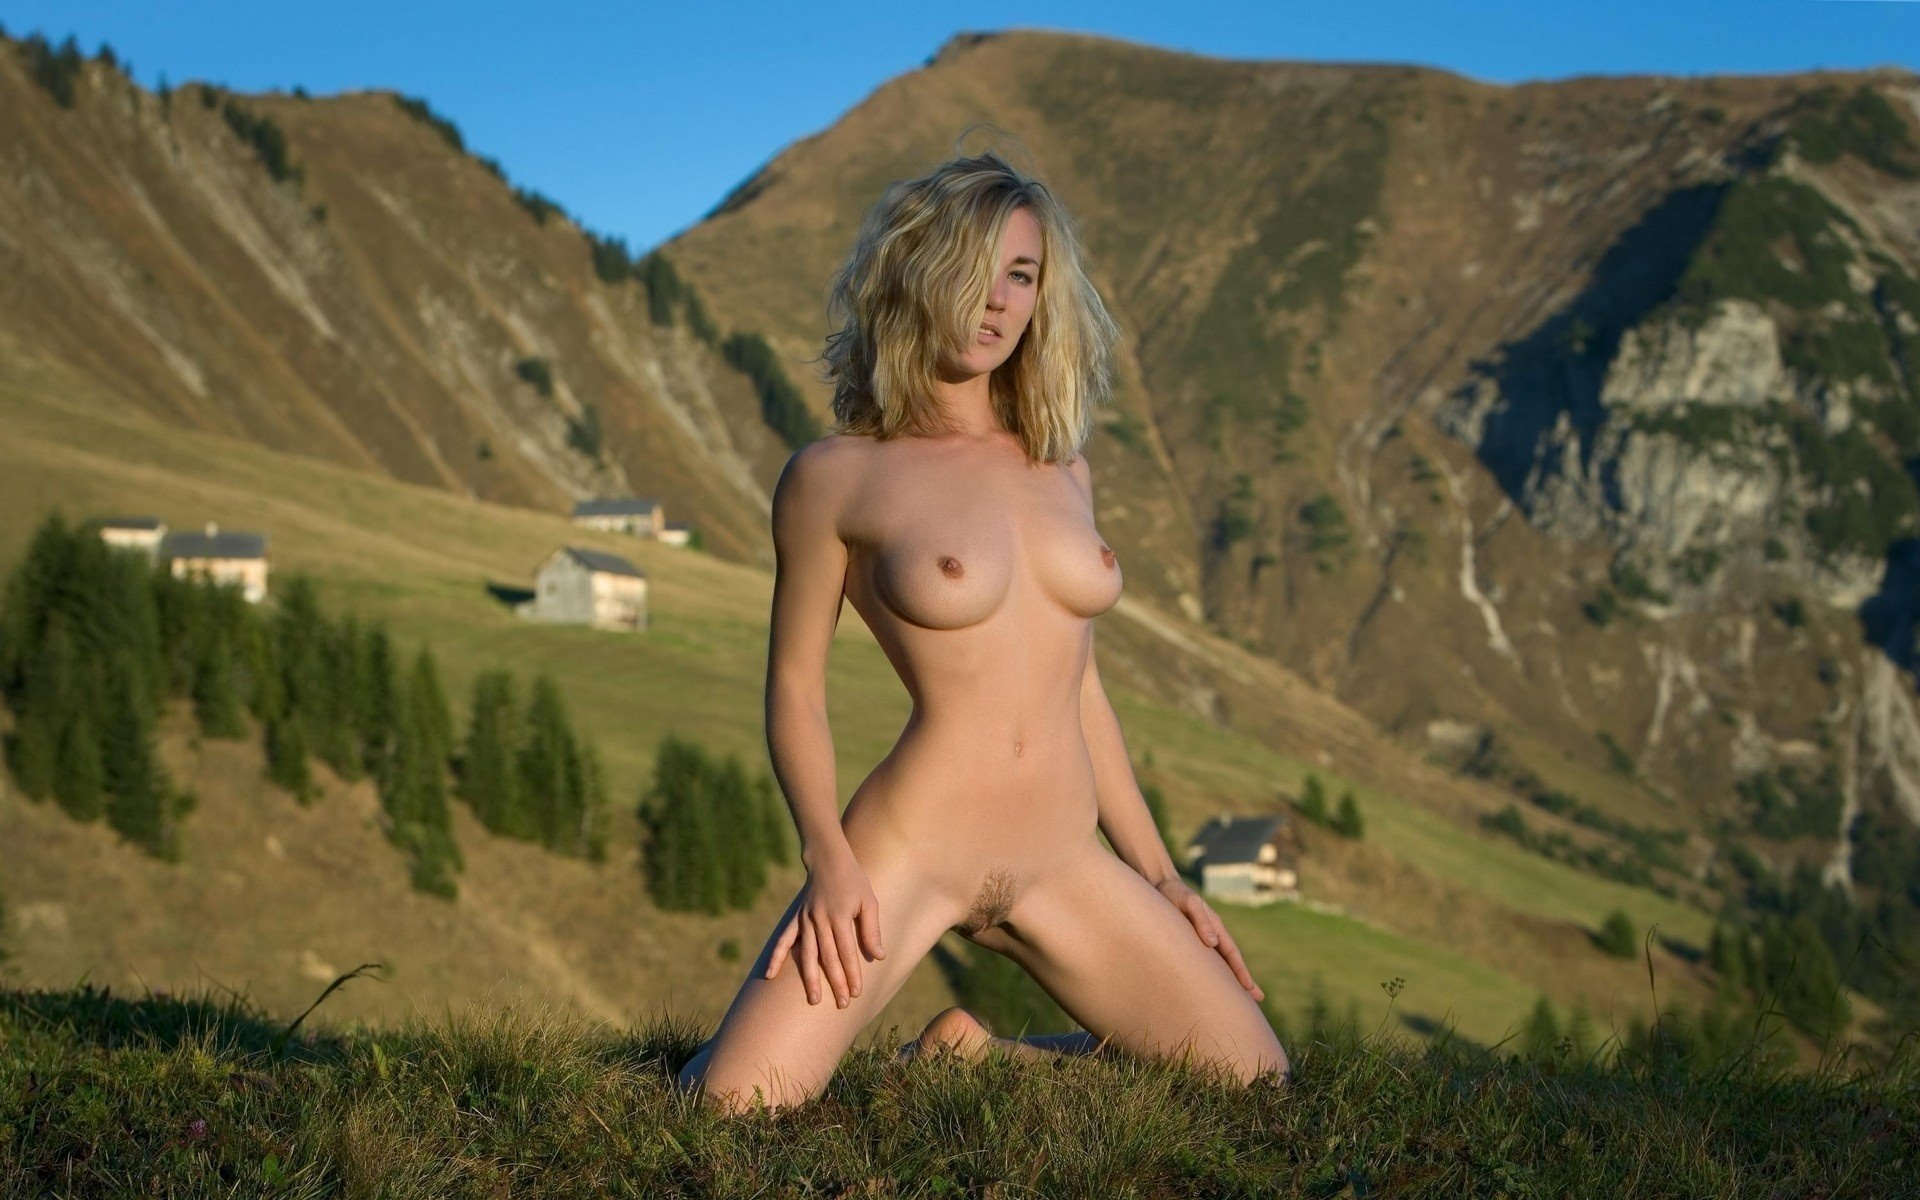 Sexy nude girl overlooking the valley